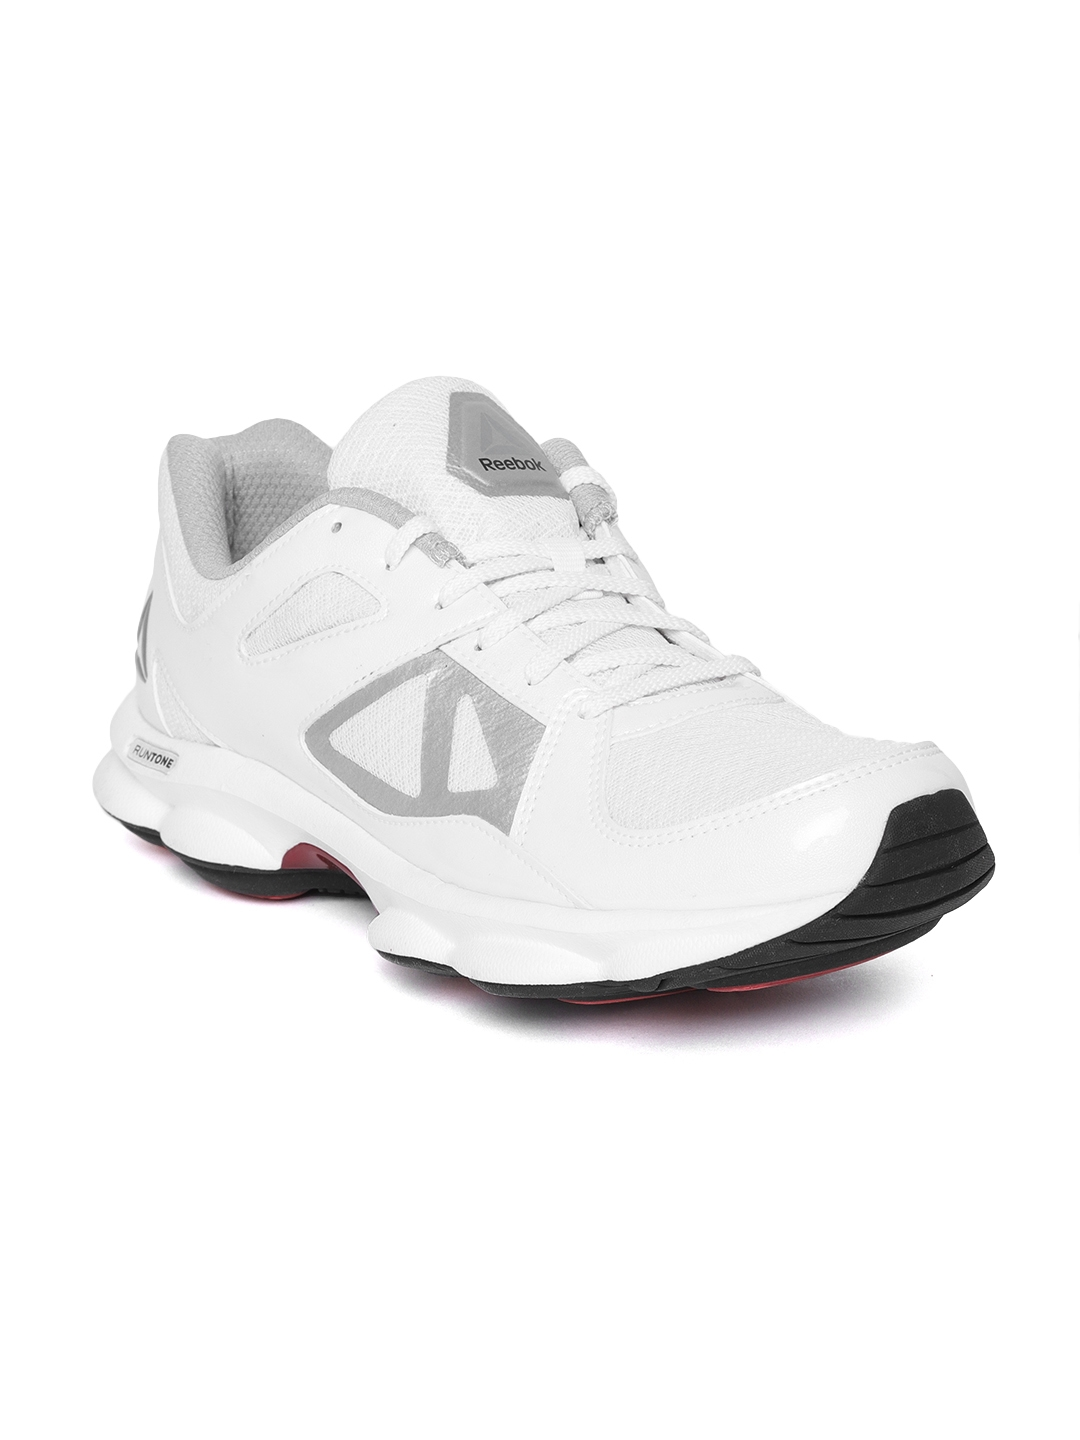 399f4521f Buy Reebok Classic Men White Sneakers - Casual Shoes for Men 2003451 ...